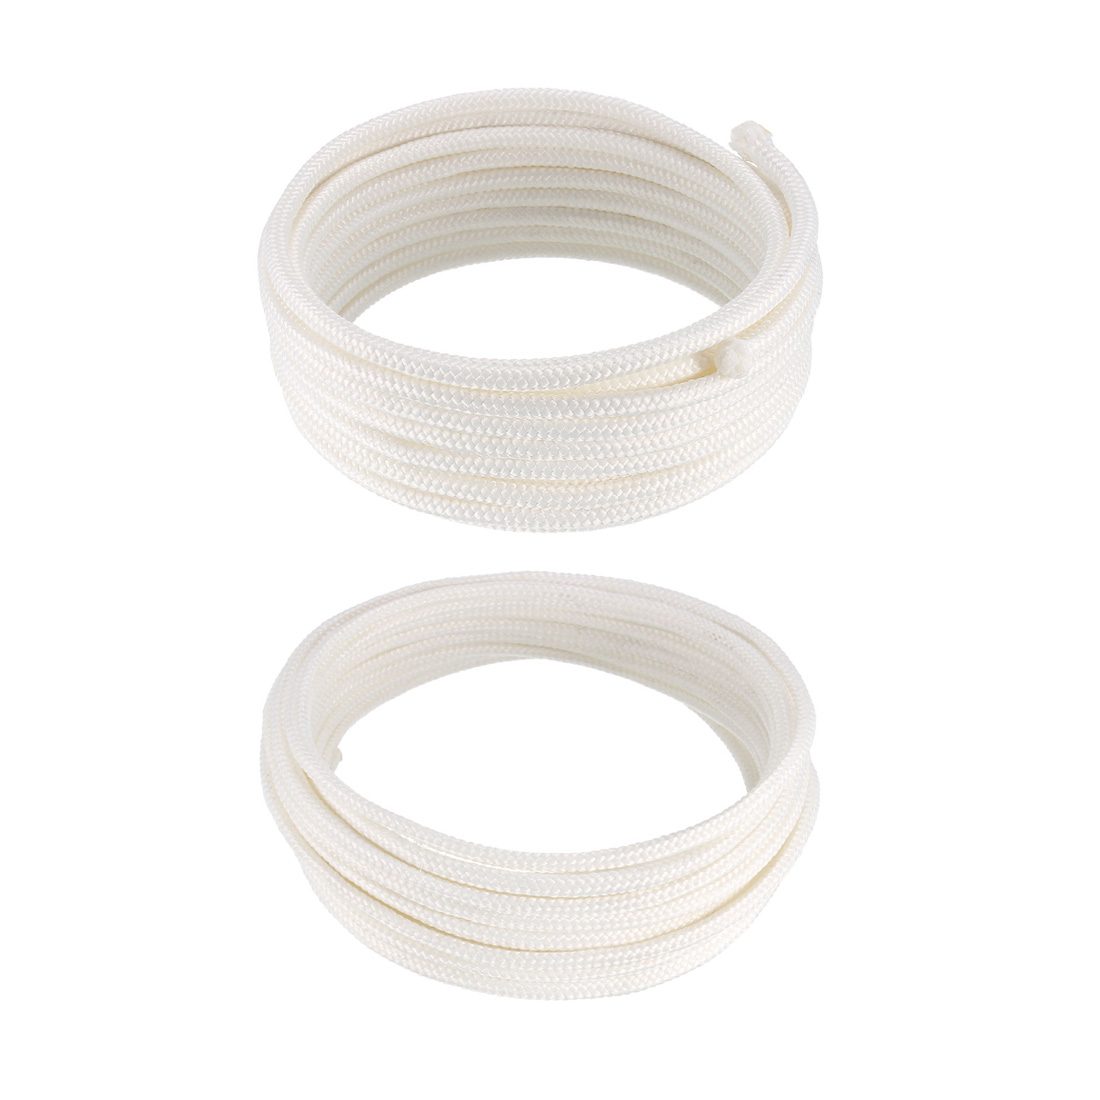 Uxcell 1-5Pcs Recoil Starter Rope 3.5-6mm Dia 1.3-1.6m Nylon Pull Cord For LawnMower Trimmer Chainsaw Engine Part